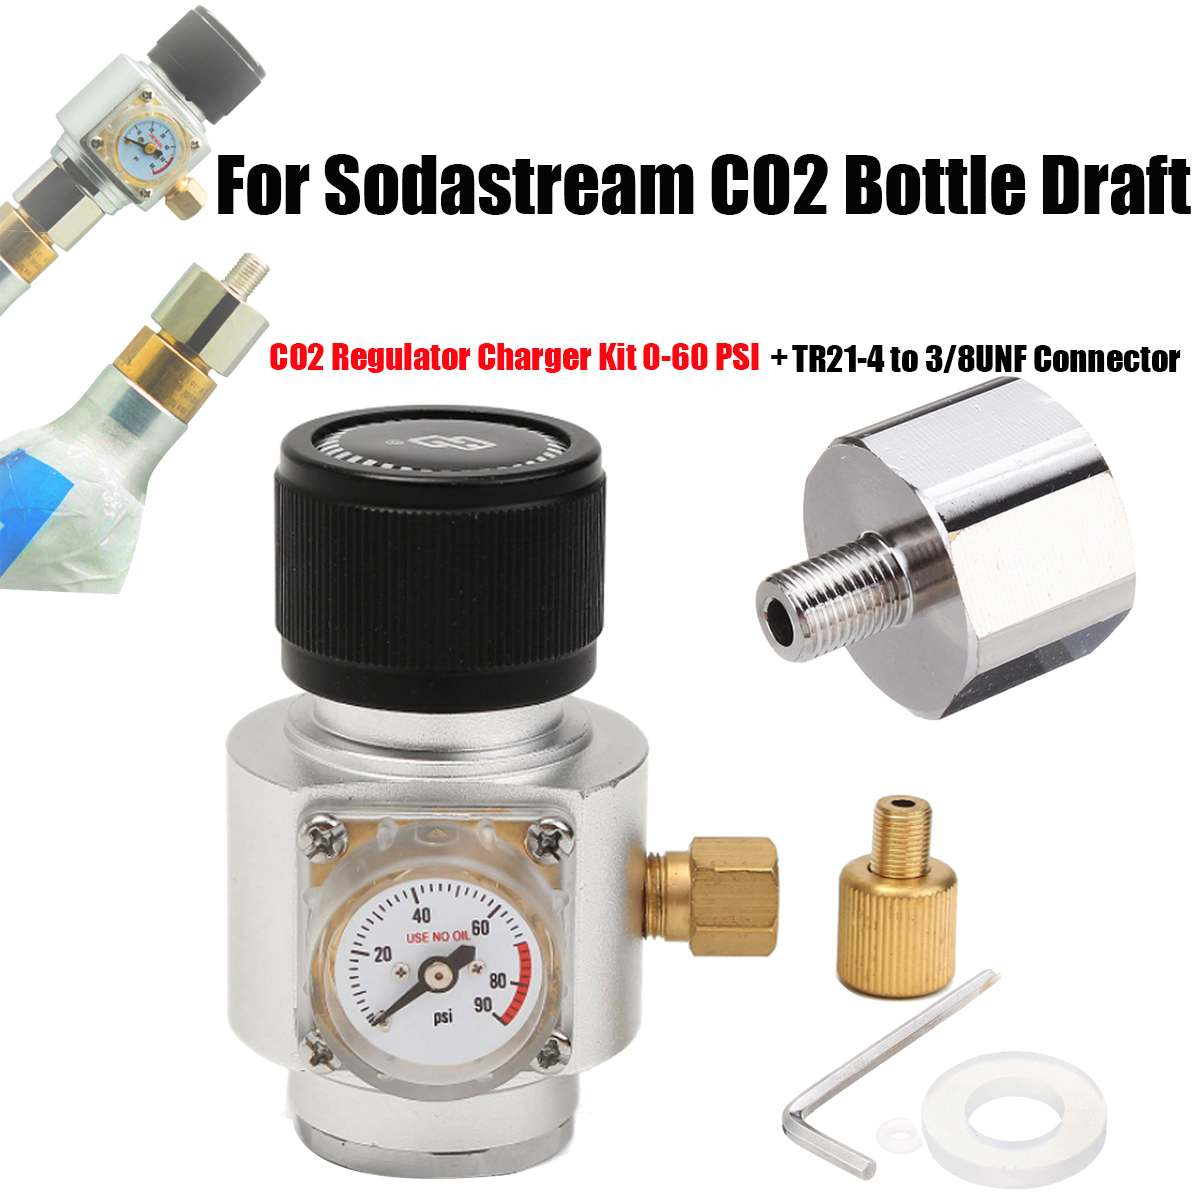 Regulated CO2 Charger  CO2 Charger Regulators With Adapter Kit 0-60 PSI For Soda Stream Cylinder Draft HomeRegulated CO2 Charger  CO2 Charger Regulators With Adapter Kit 0-60 PSI For Soda Stream Cylinder Draft Home